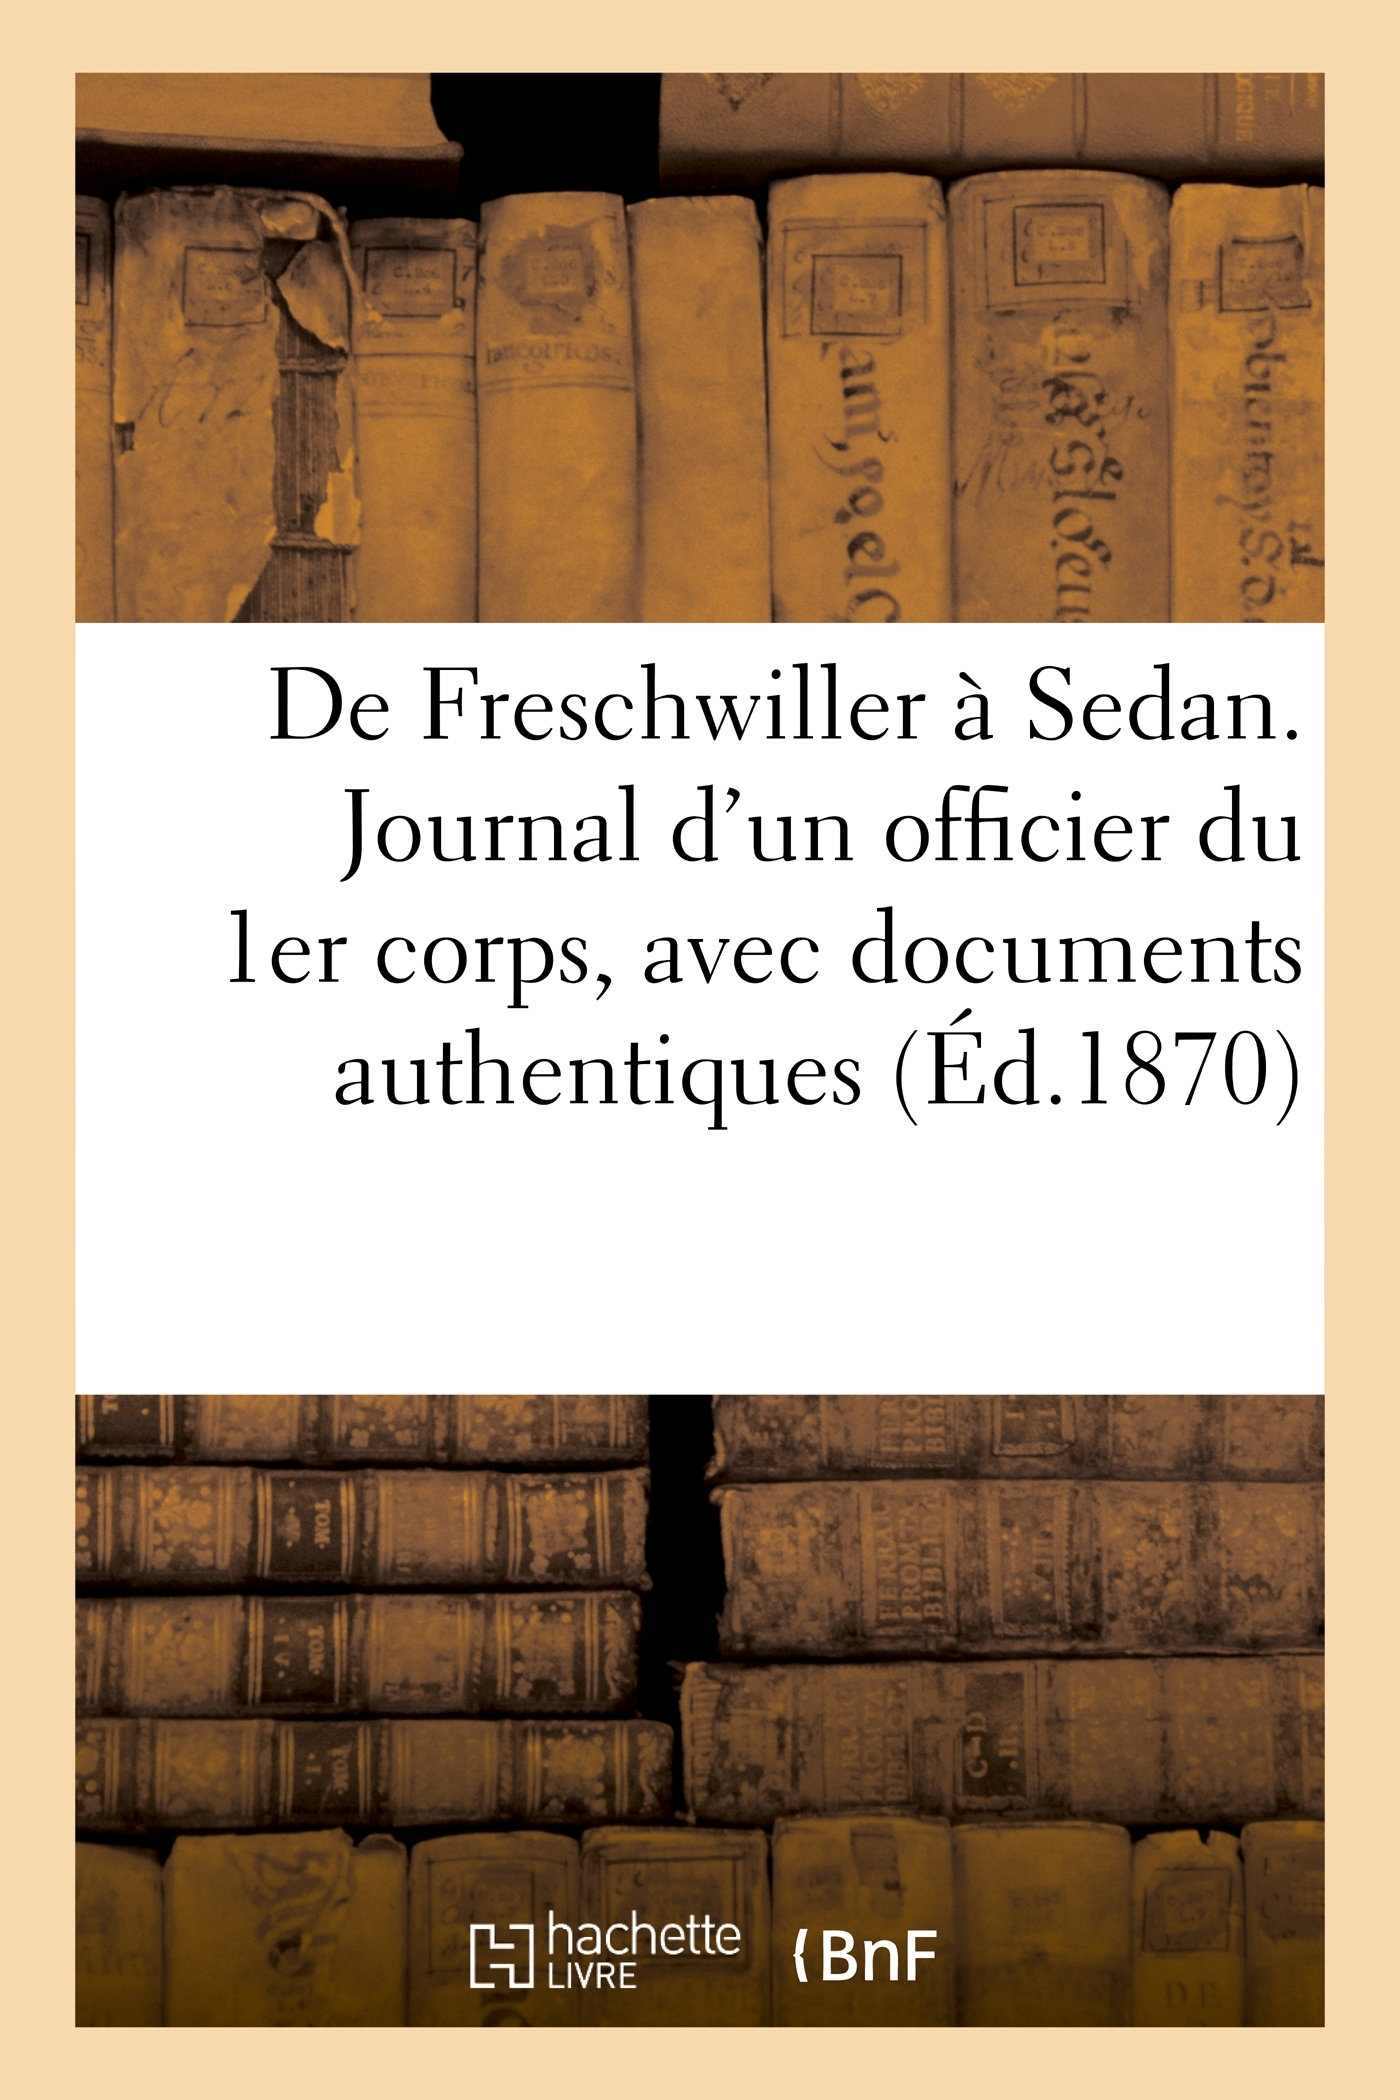 DE FRESCHWILLER A SEDAN. JOURNAL D'UN OFFICIER DU 1ER CORPS, AVEC DOCUMENTS AUTHENTIQUES